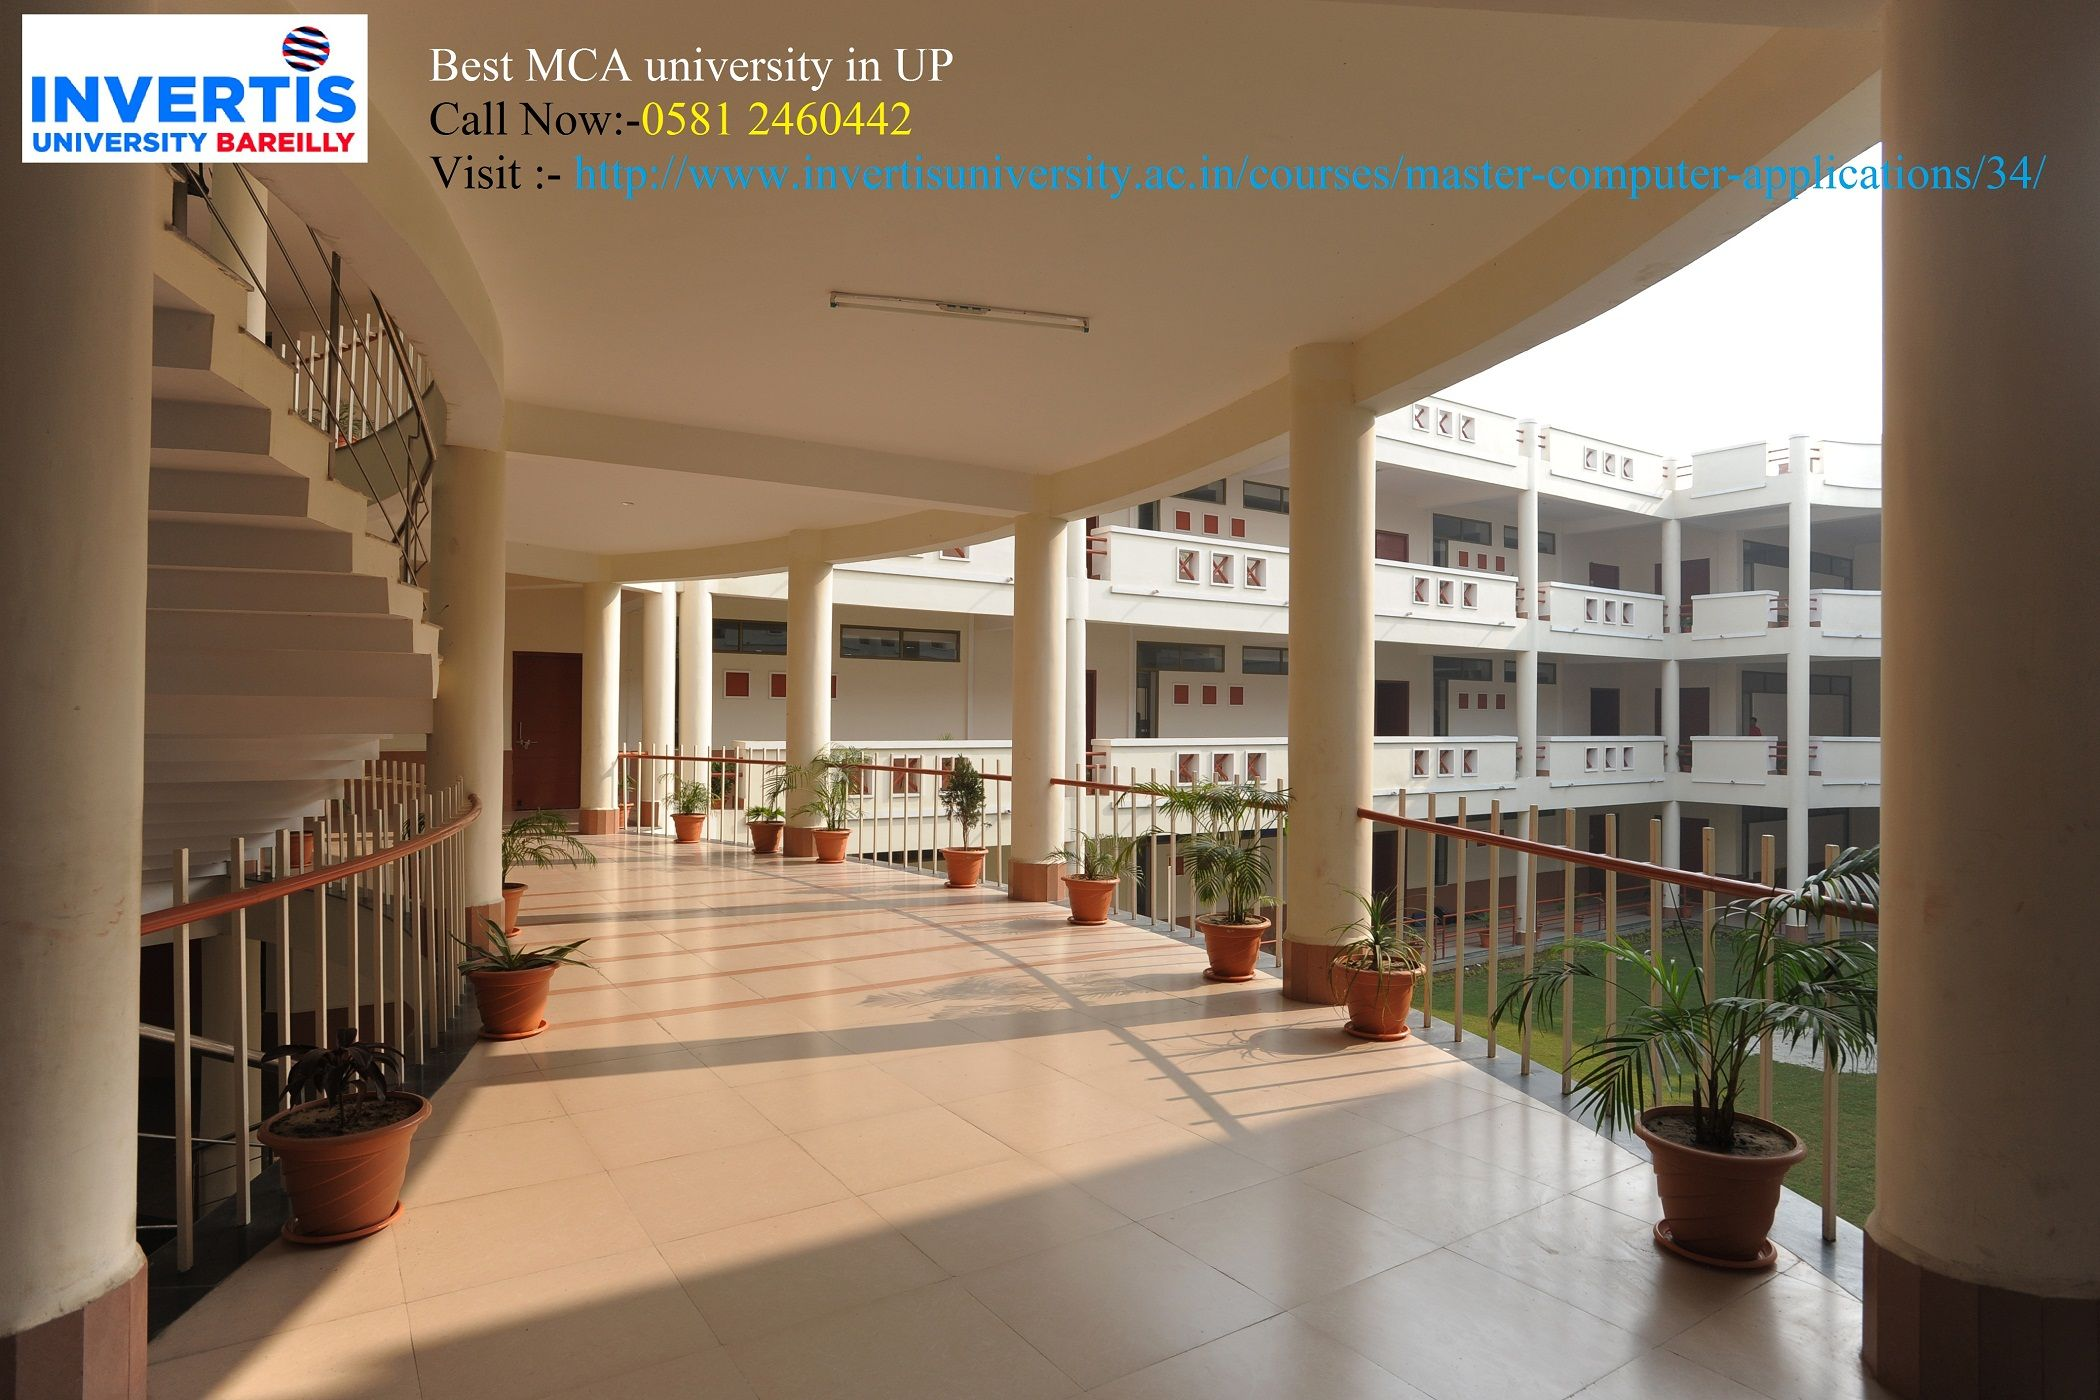 Mca Check Our Mca Course Details Eligibility Criteria Fees And Admission Process Of Mca At Invertis University University Bareilly Mca